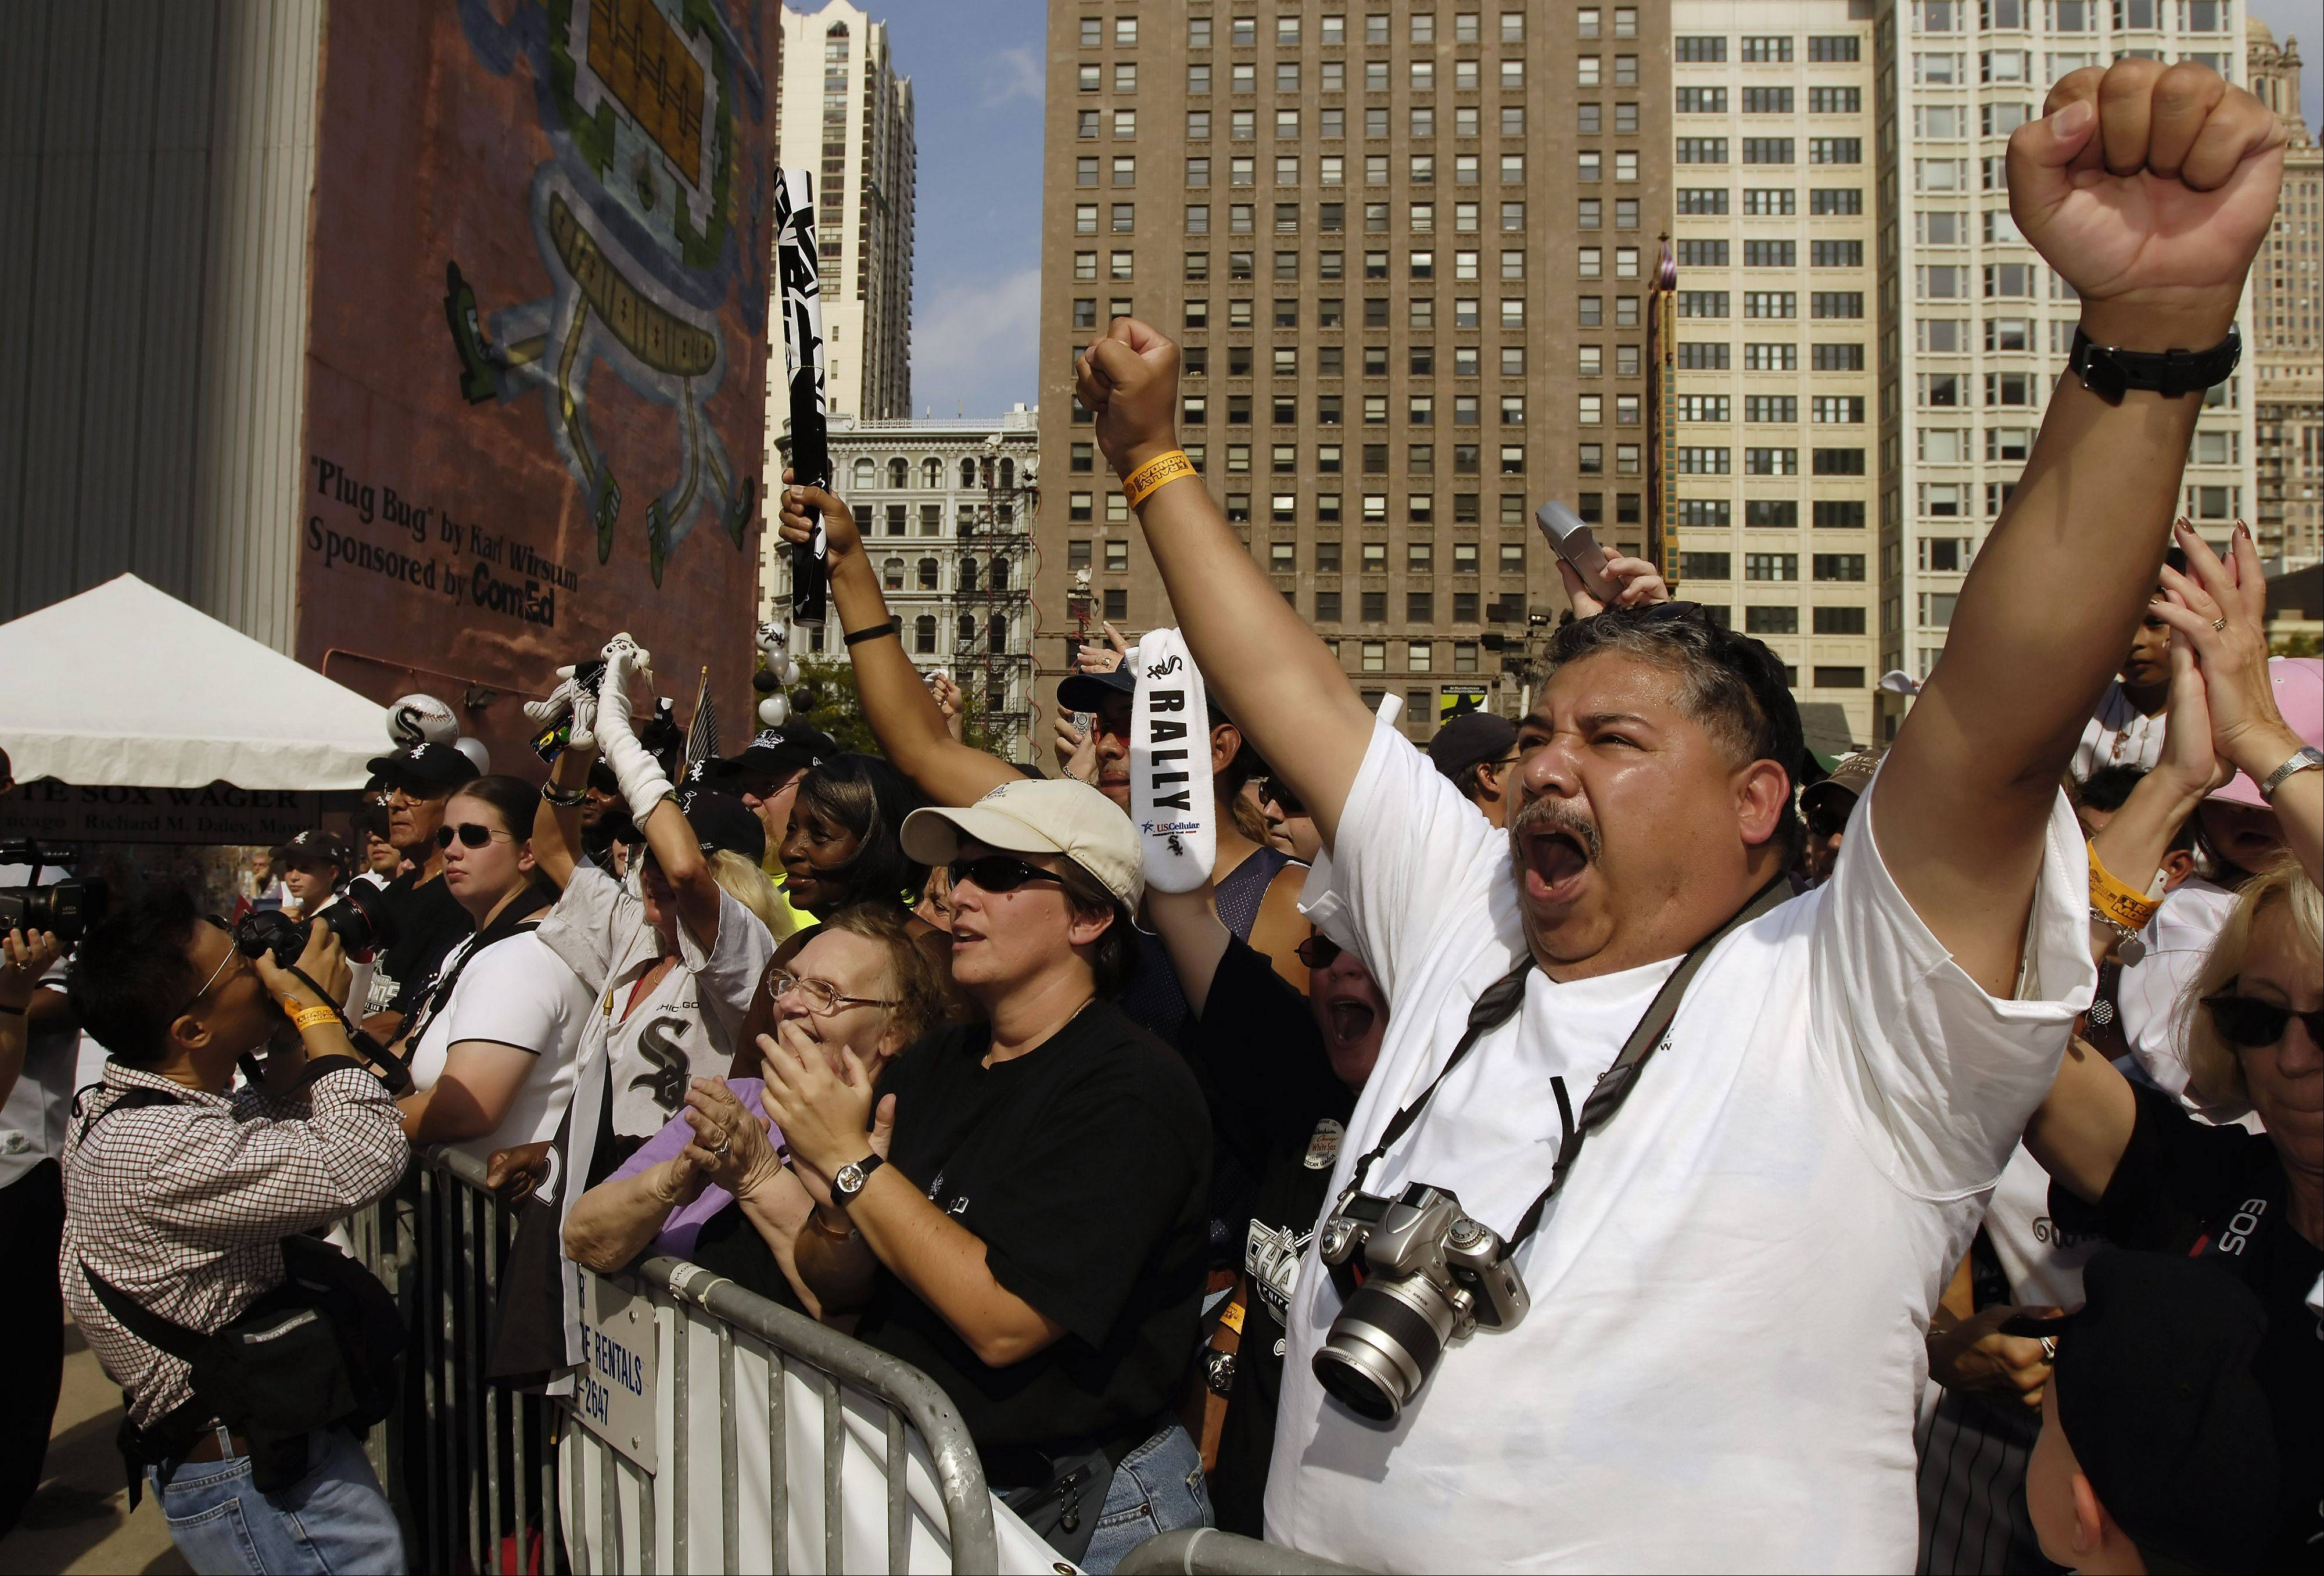 Steve Gallegos of Indiana cheers for his team while attending the 2005 American League Central Division Champion Chicago White Sox rally.